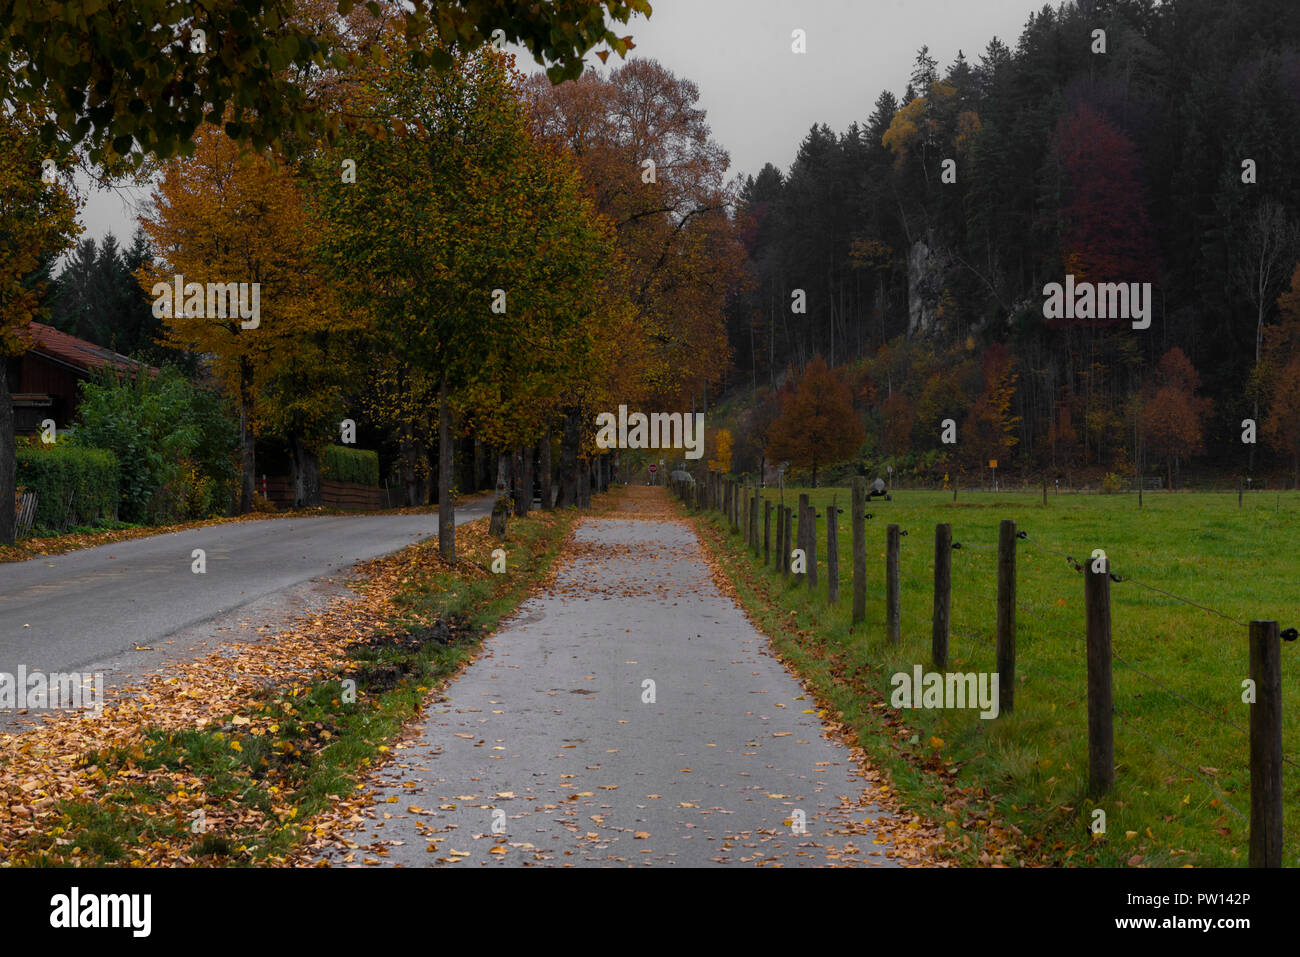 Autumnal alley going forward parallel with a road and the fence from a ranch near bavarian city Fussen in Germany. - Stock Image